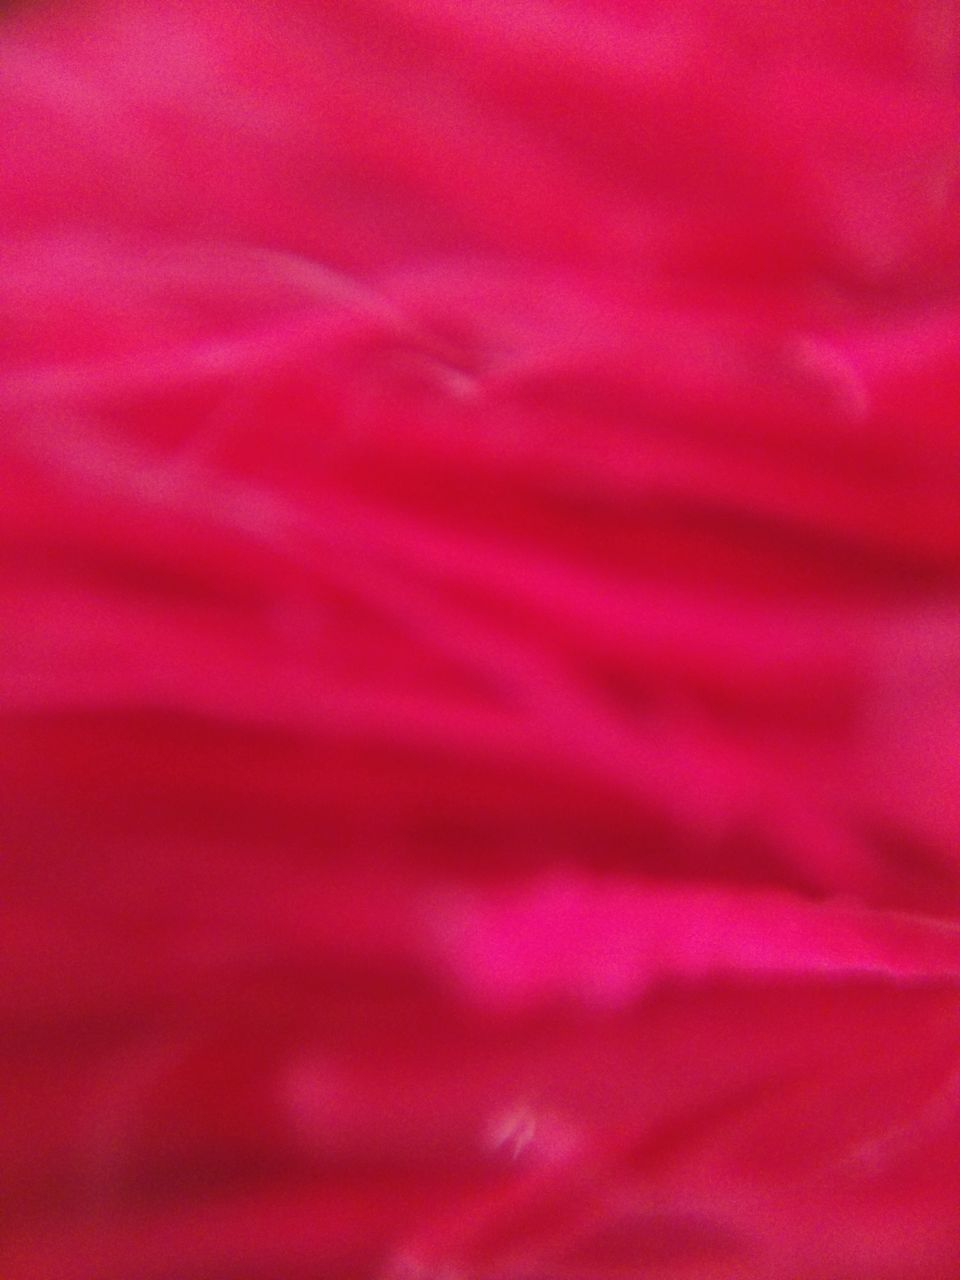 pink color, backgrounds, textured, full frame, abstract, no people, textile, pattern, red, close-up, day, freshness